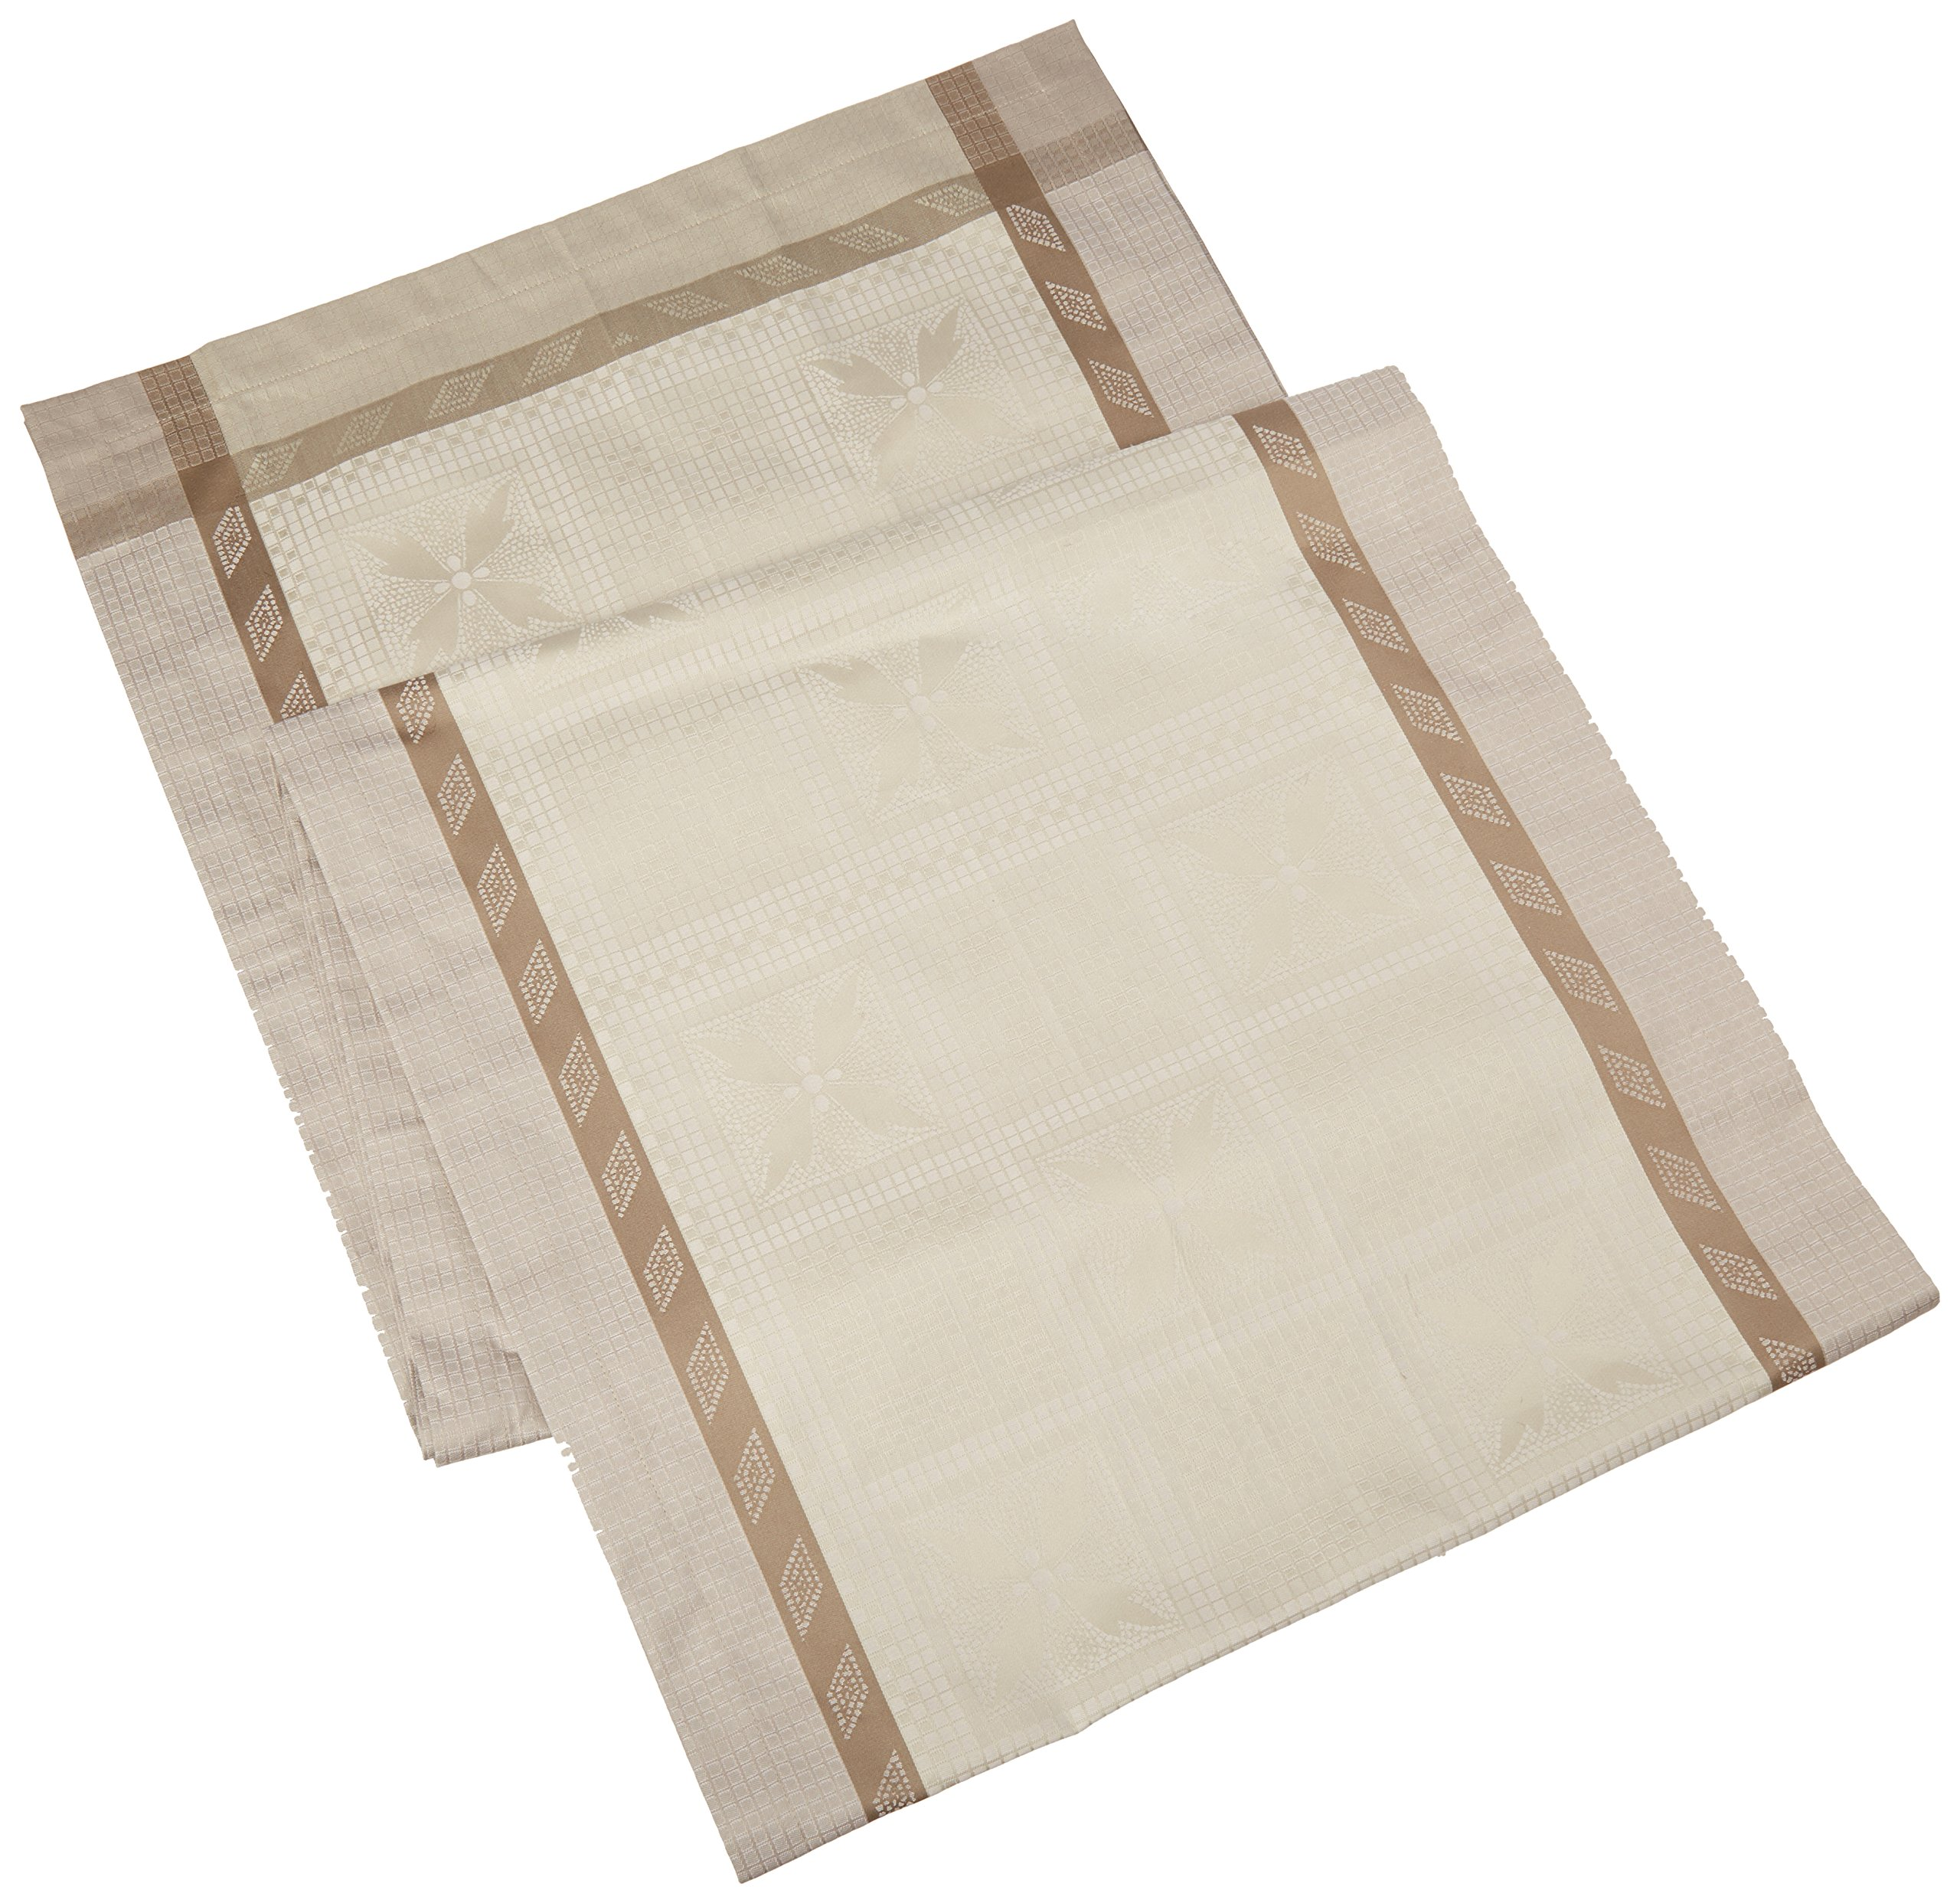 Garnier Thiebaut Antique Table Runner, 20 by 106'', Terre, Green Sweet Stain Resistant Cotton, Made in France